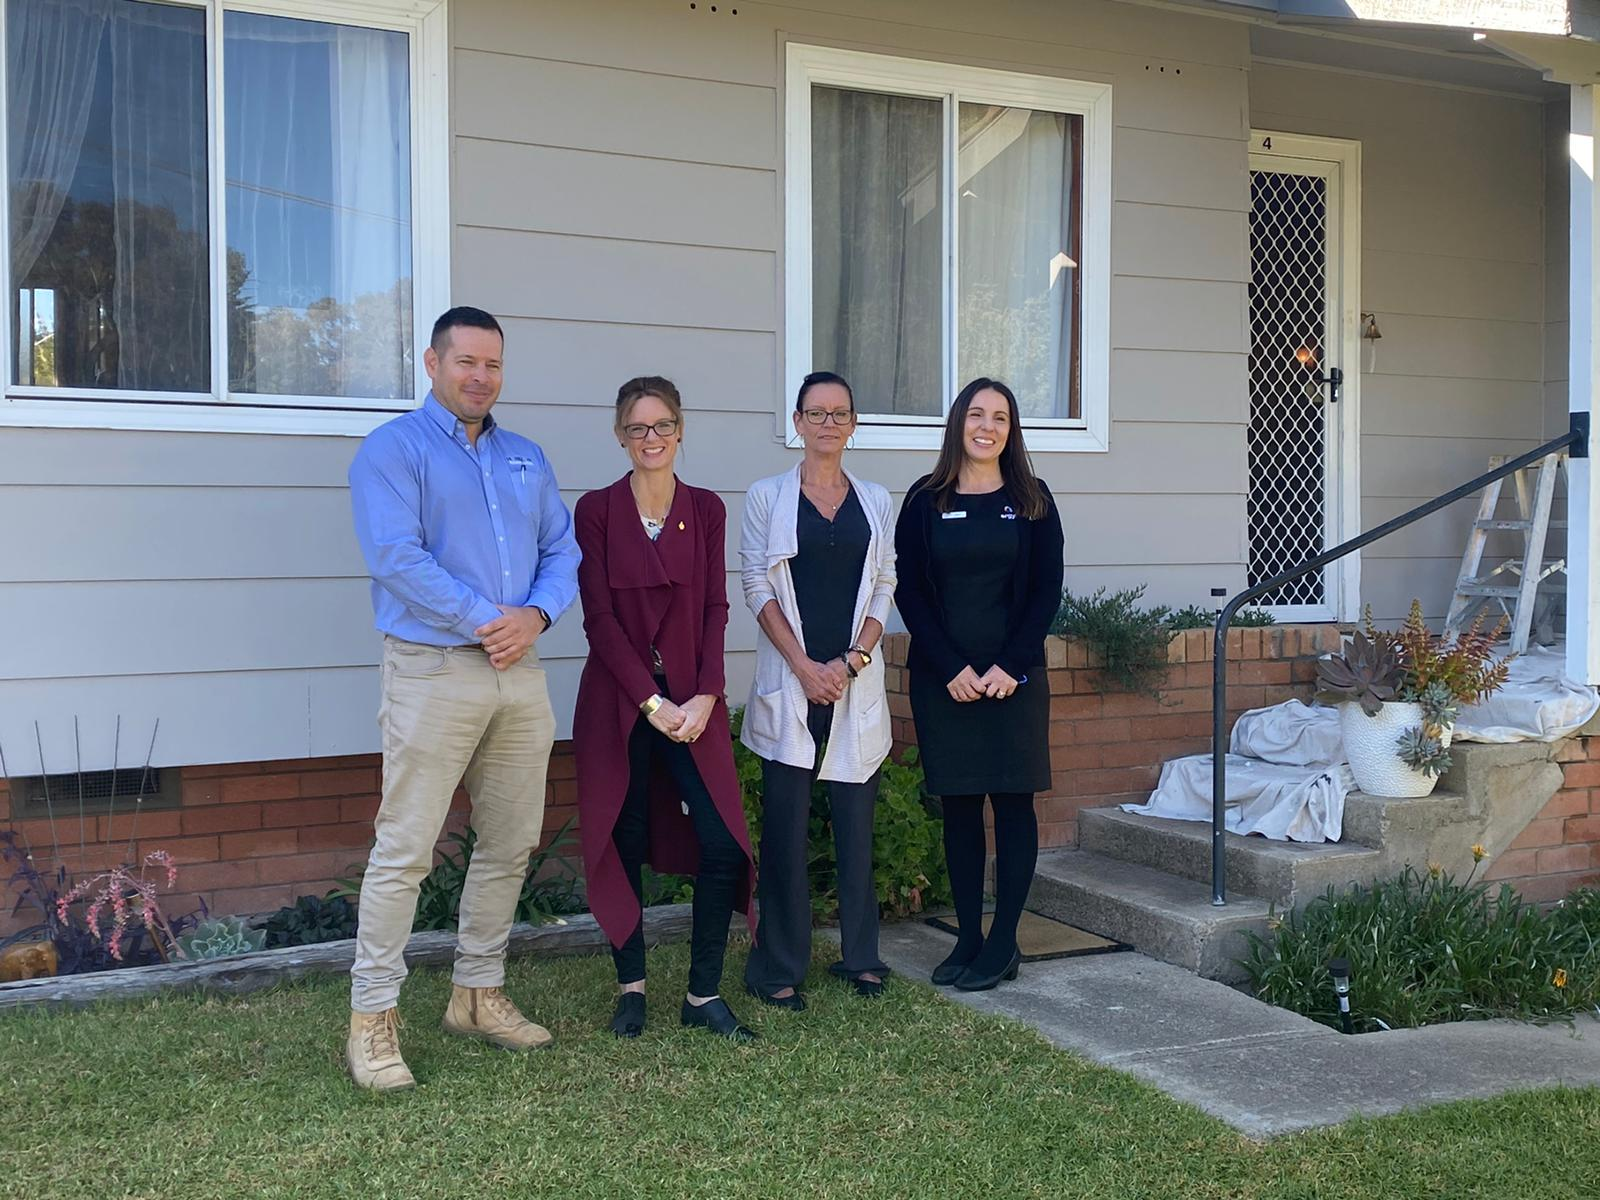 David Robertson, Steph Cooke MP, Bronwyn Weaver and Jamie Lobb stand in front of a freshly painted house and smile at the camera.